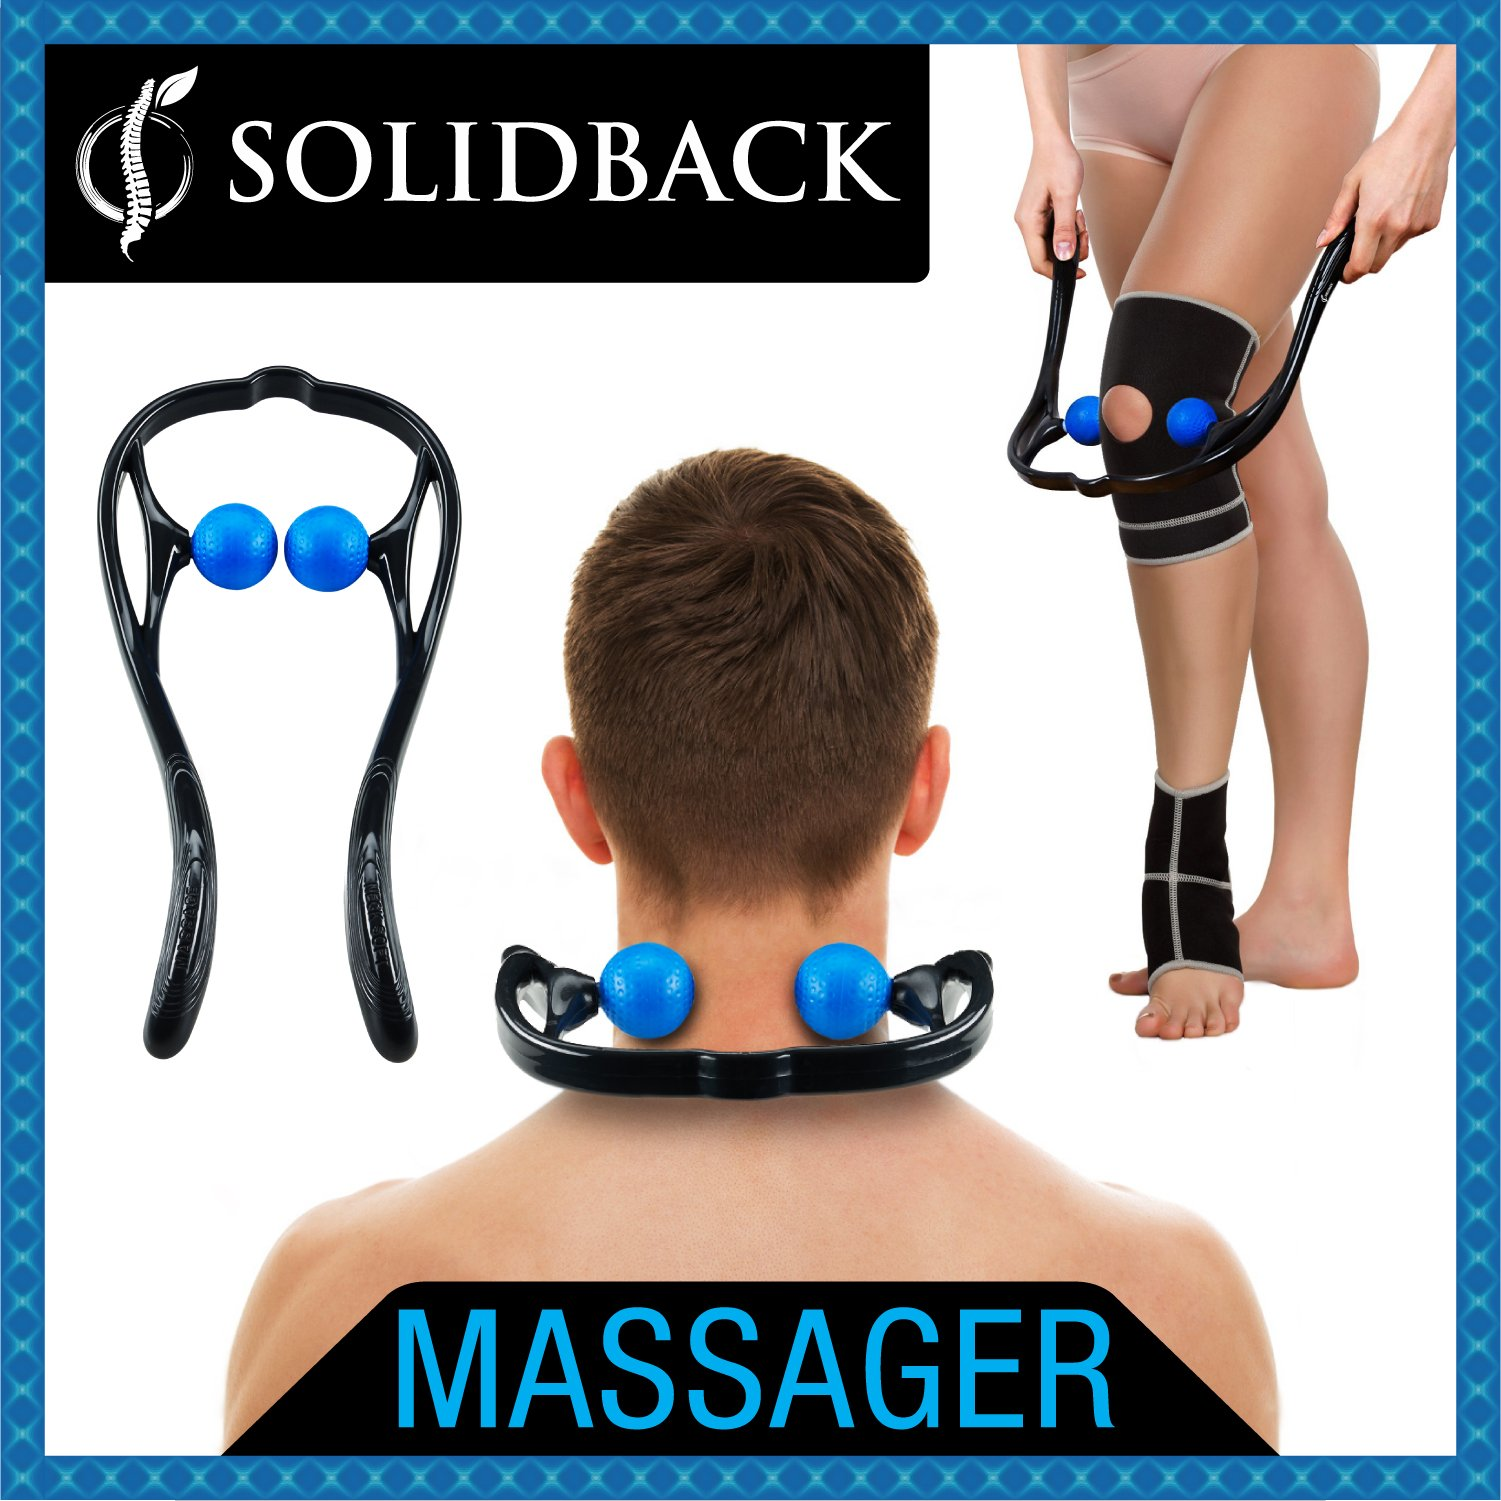 SOLIDBACK   Handheld Deep Tissue Self Massage Tool   Best Massager for Head Neck Legs Feet and Knee Pain Relief   Trigger Point Therapy   Myofascial Release Tools   Accupressure and Reflexology Balls